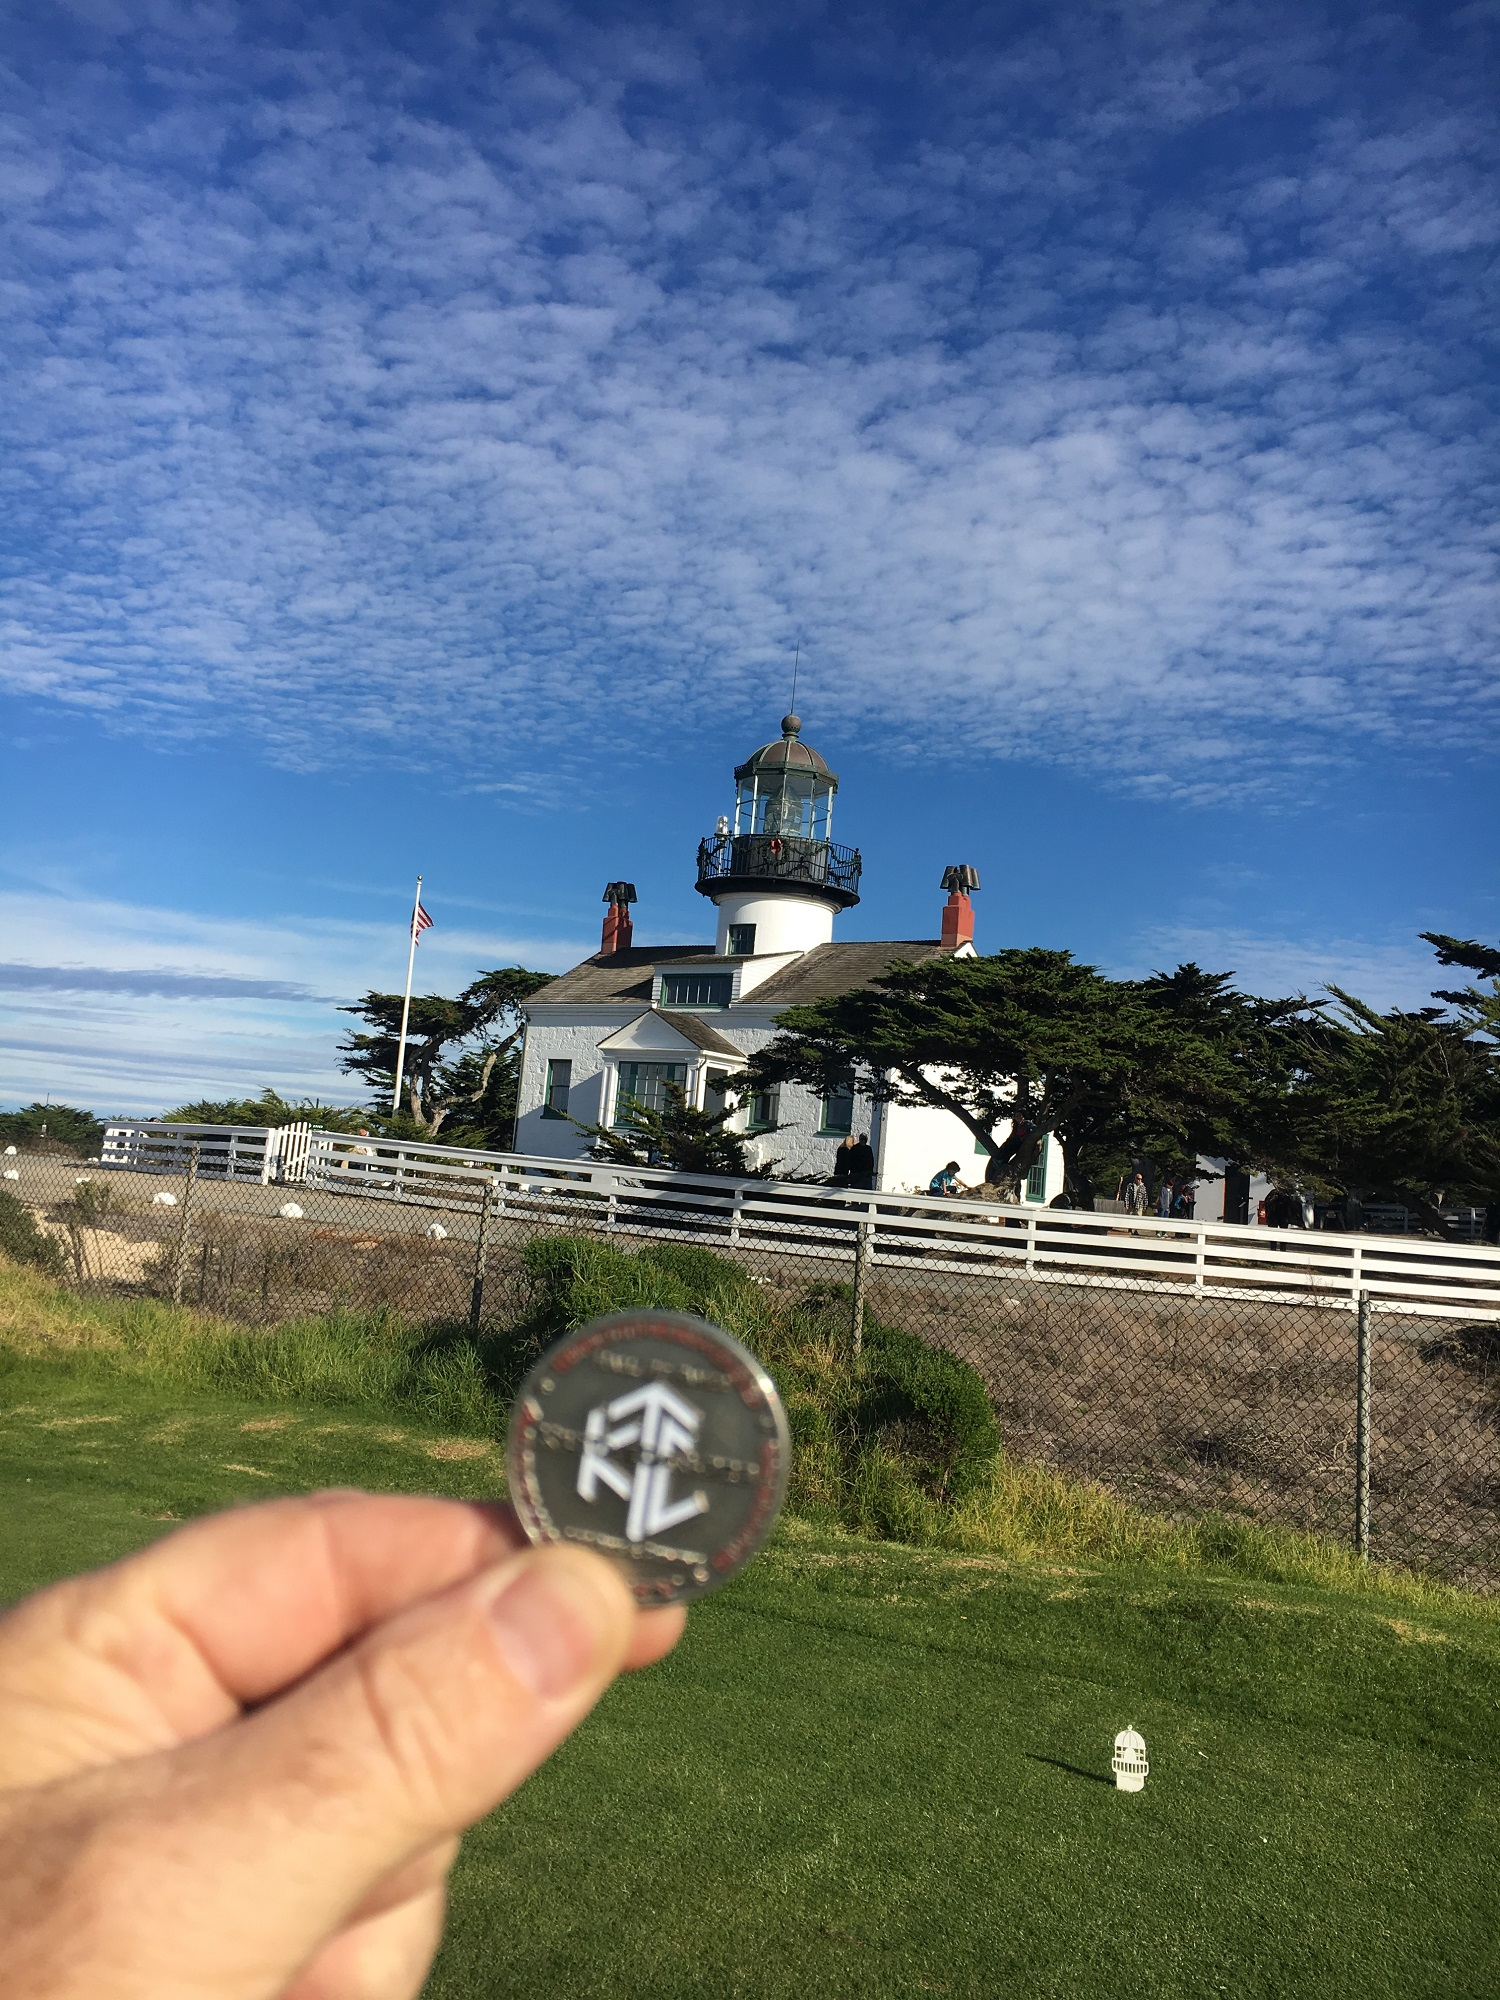 Photo of Cmark at Pacific Grove on the Monterey